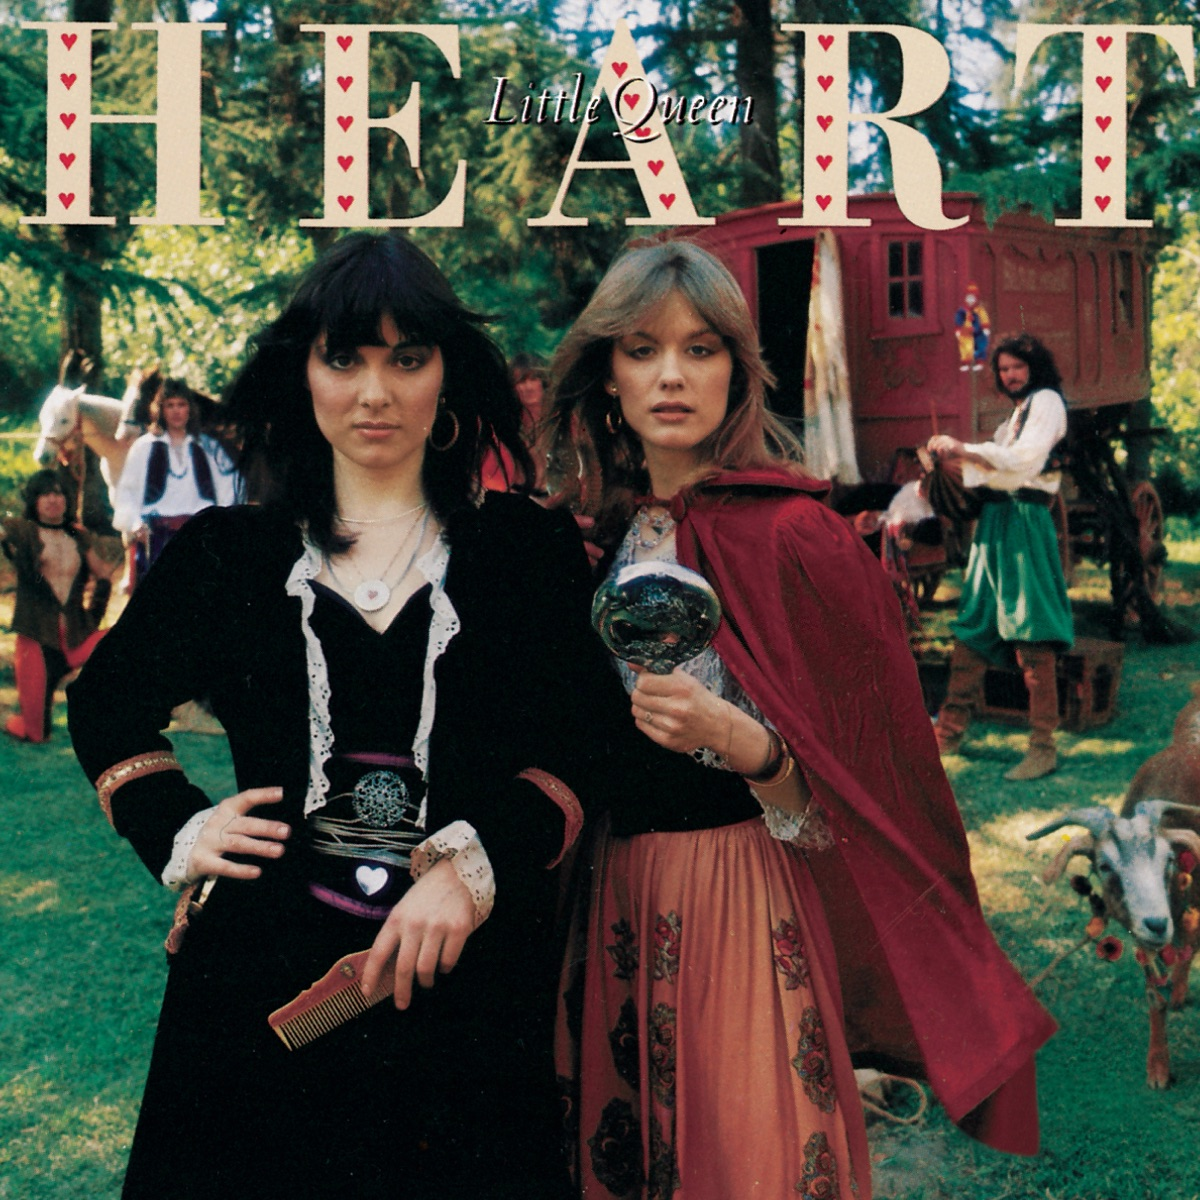 Album heart covers photo